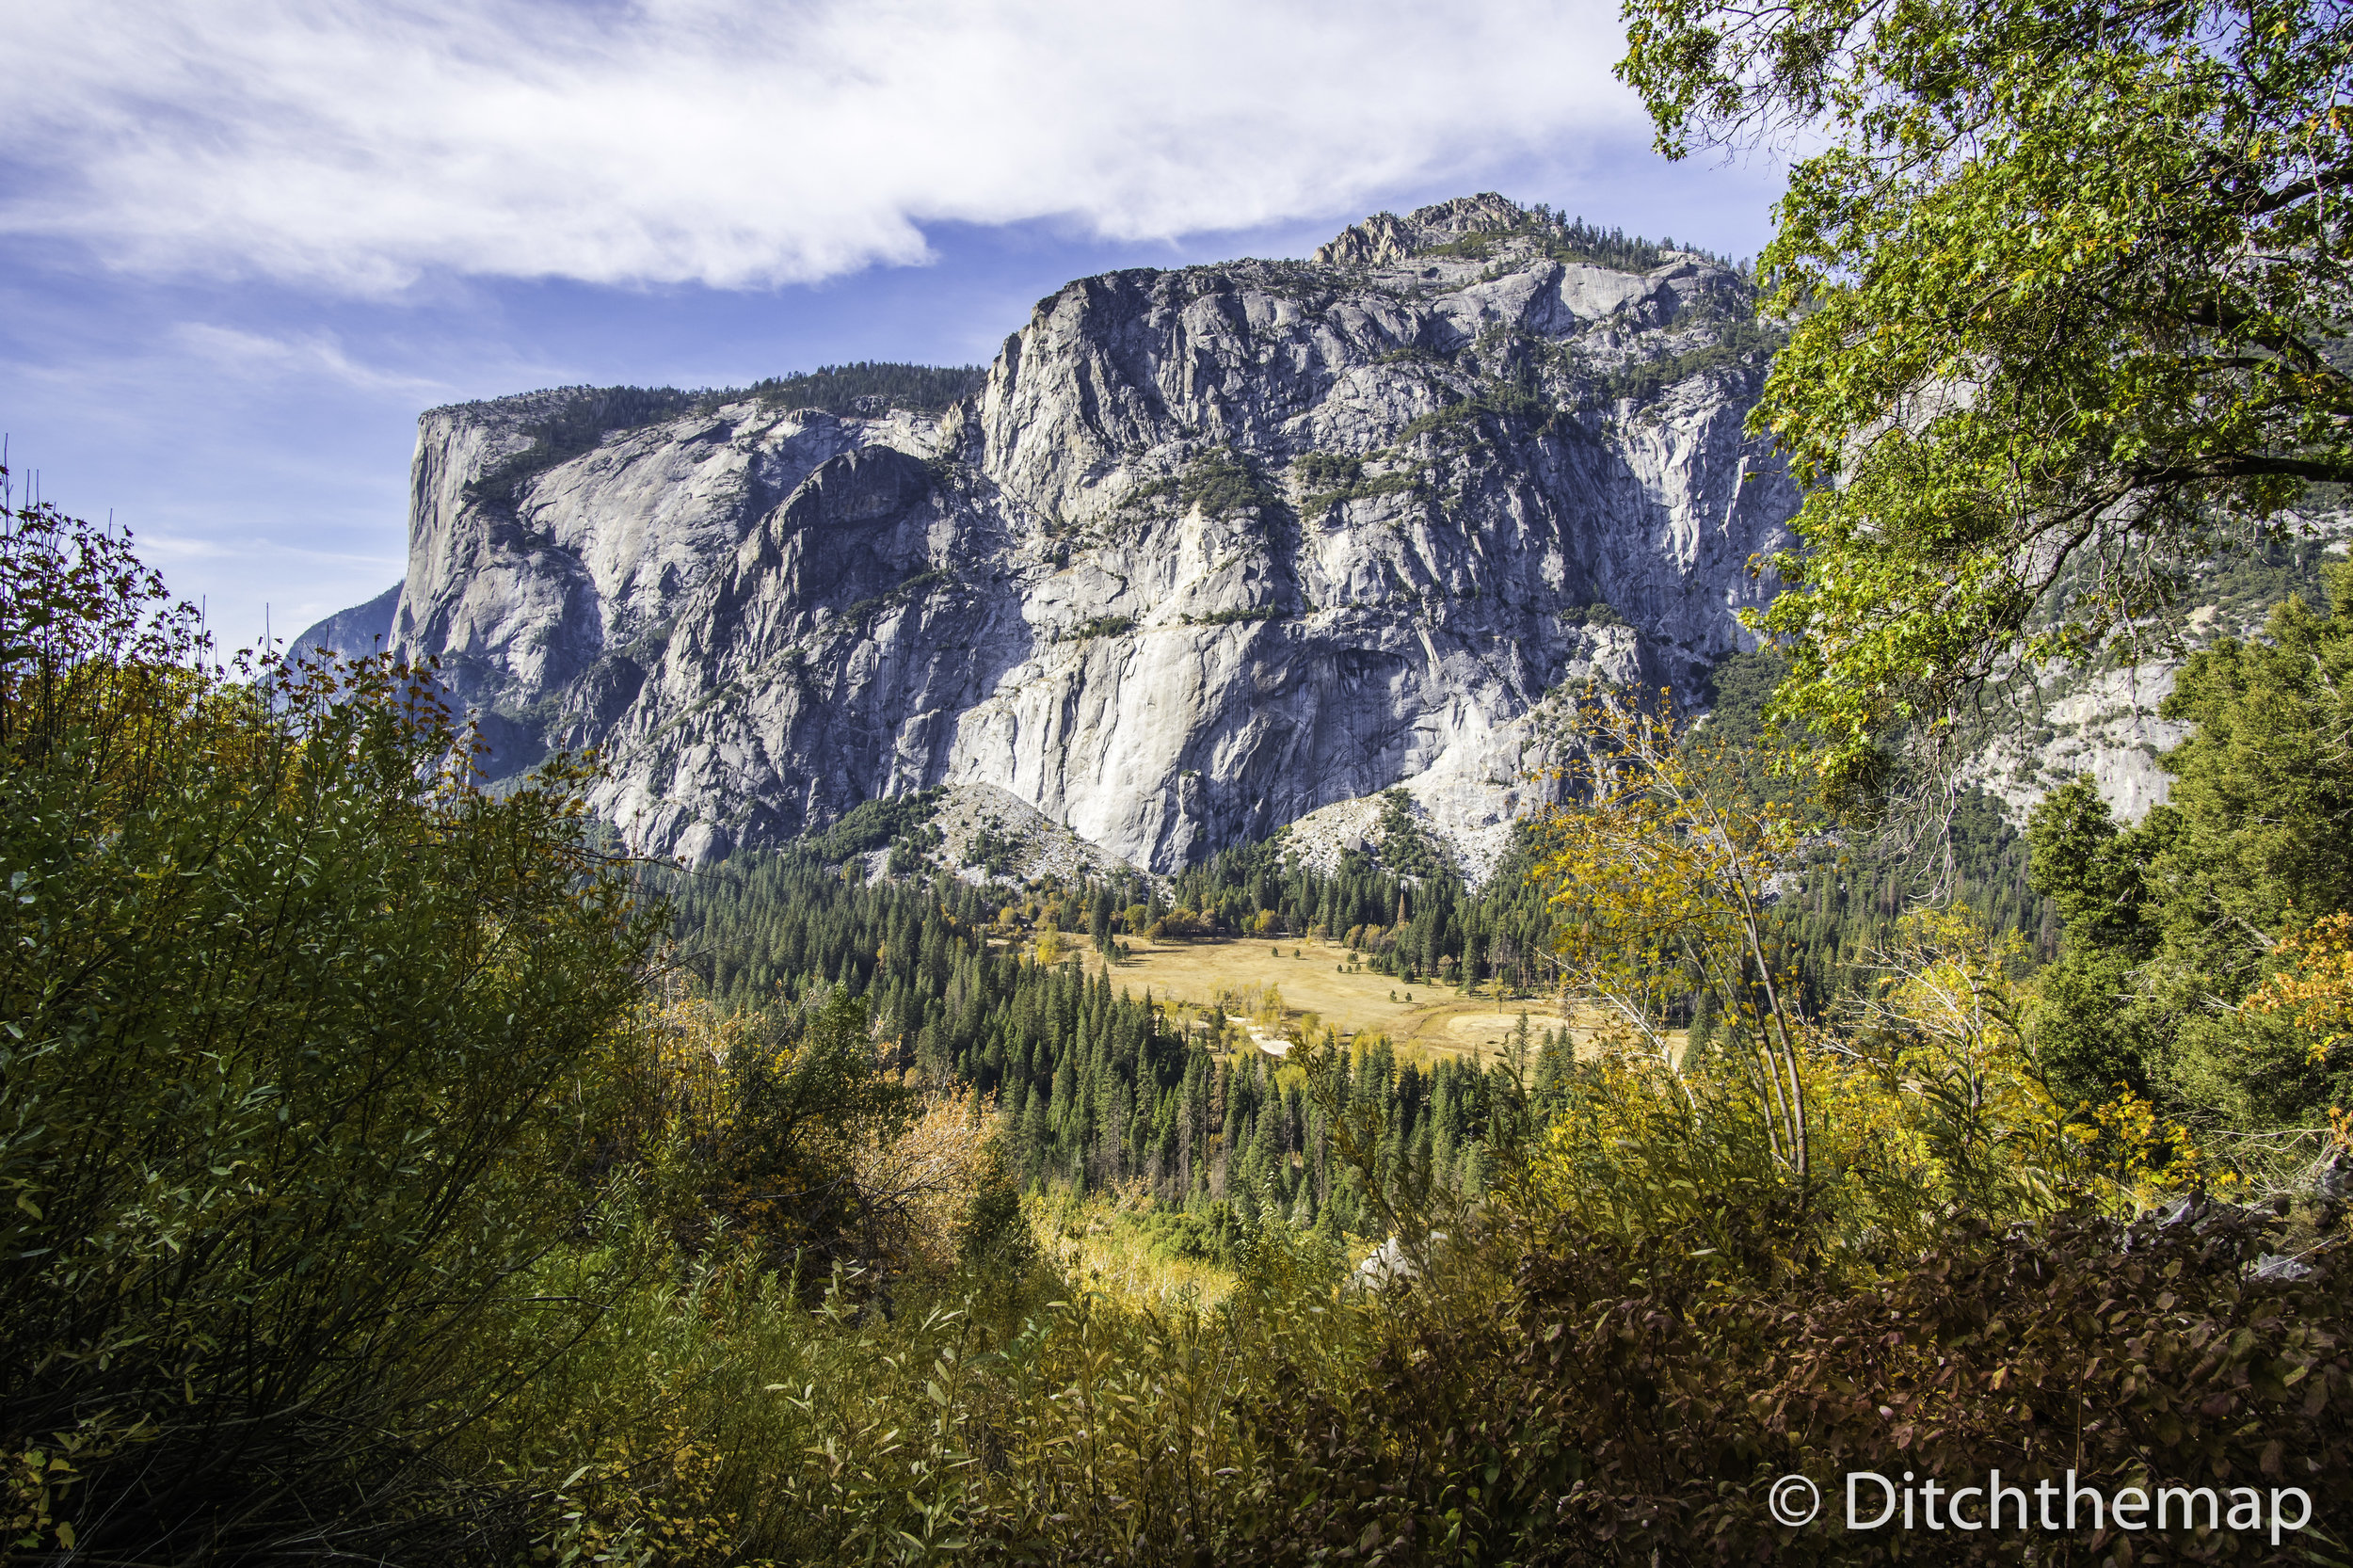 Scenic landscape of Yosemite Granite Cliff